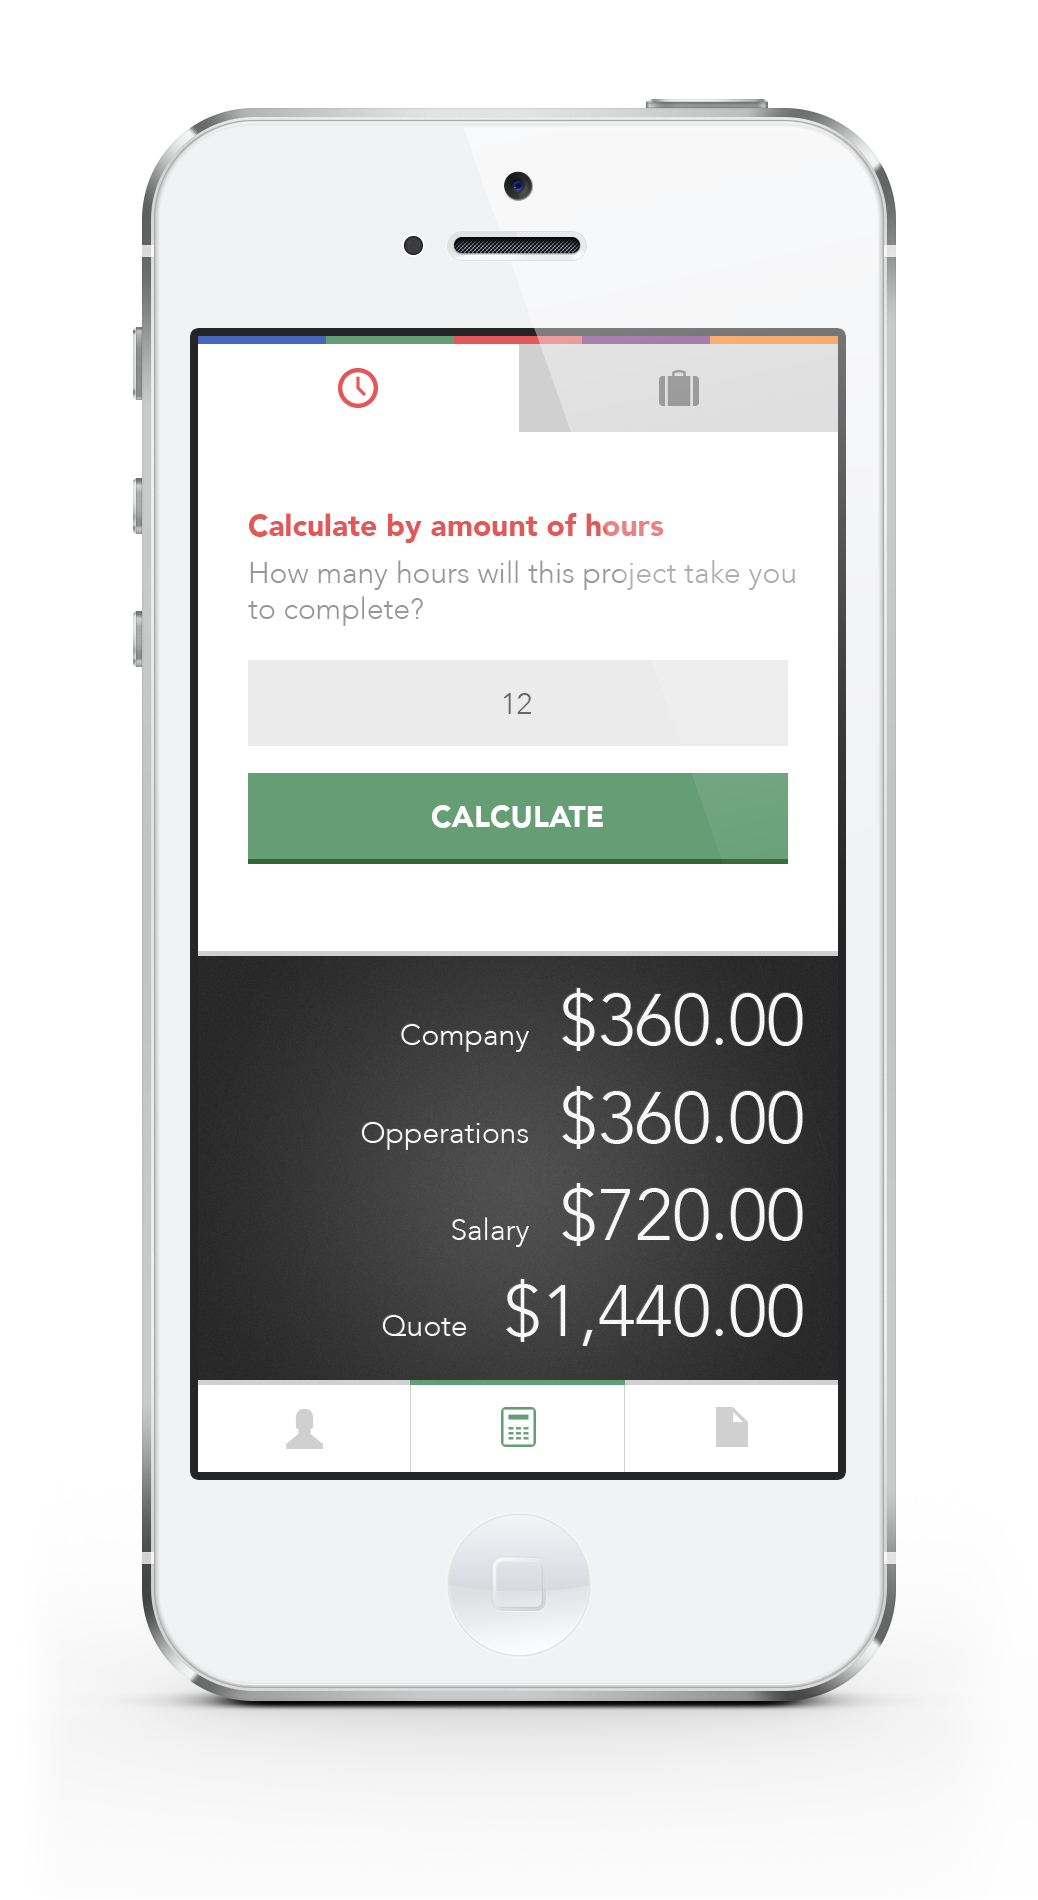 Abacus - A freelance calculator - image 16 - student project